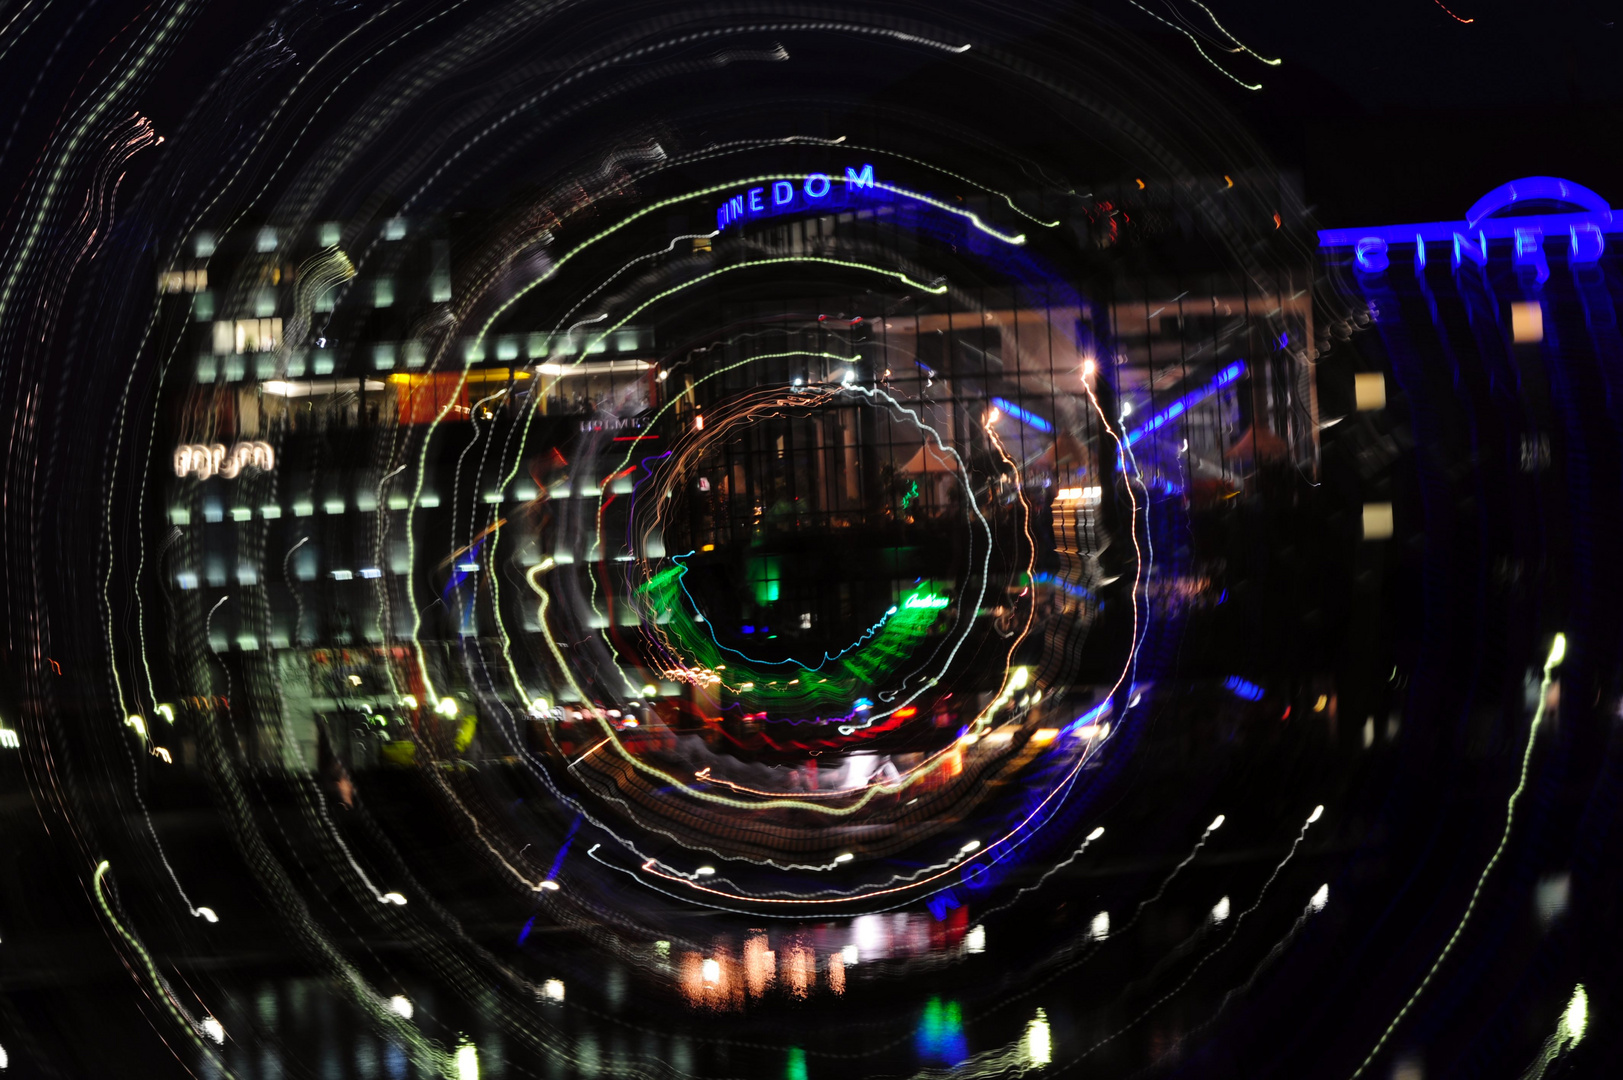 Cinedom in Circles